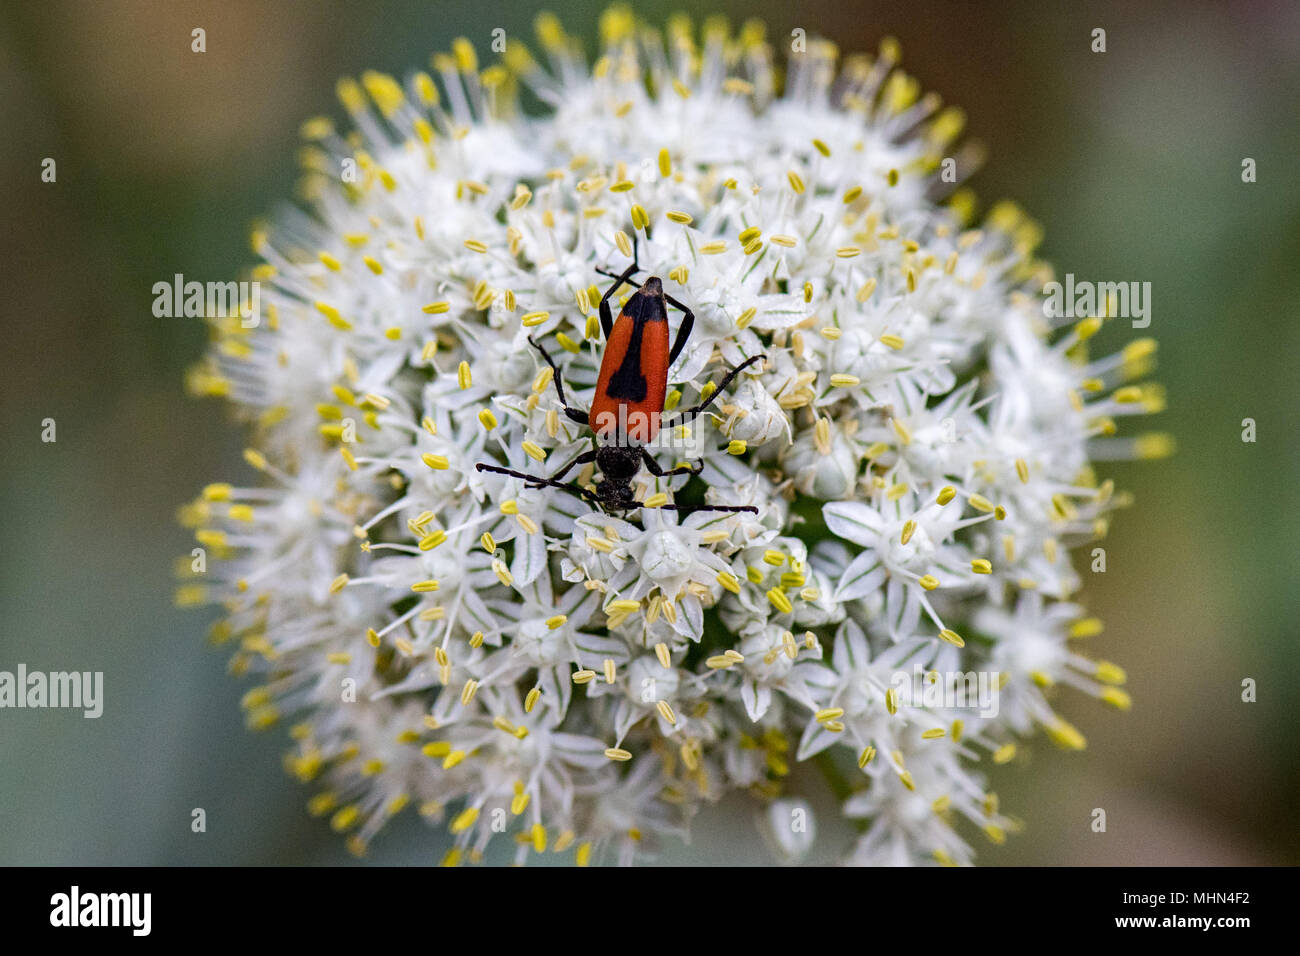 Red and black beatle on yellow and whwite onion flower background red and black beatle on yellow and whwite onion flower background mightylinksfo